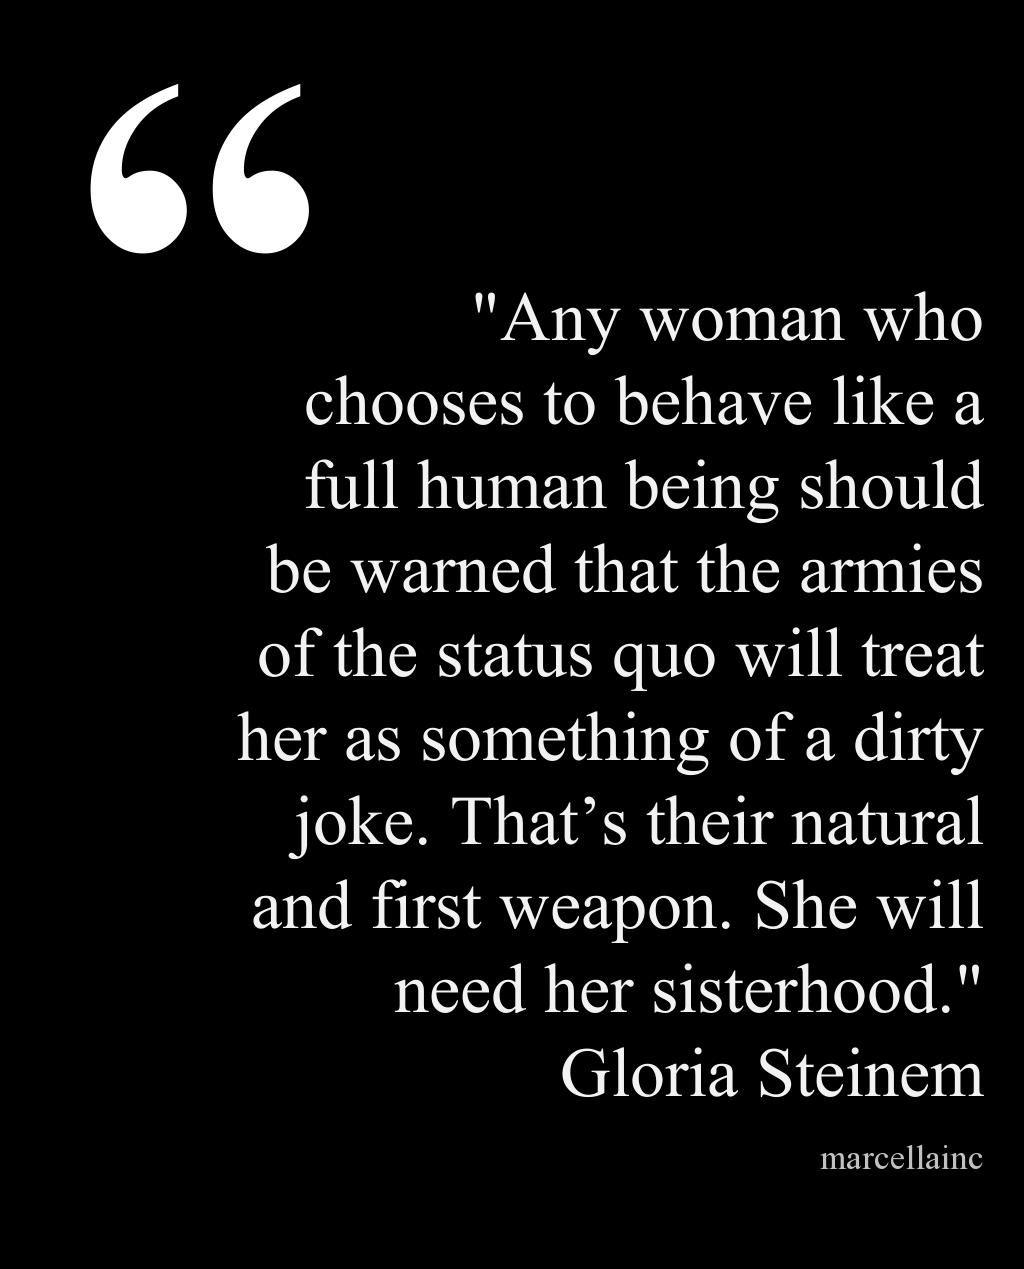 """""""Any woman who chooses to behave like a full human being should be warned that the armies of the status quo will treat her as something of a dirty joke. That's their natural and first weapon. She will need her sisterhood."""" This quote courtesy of @Pinstamatic (http://pinstamatic.com)"""